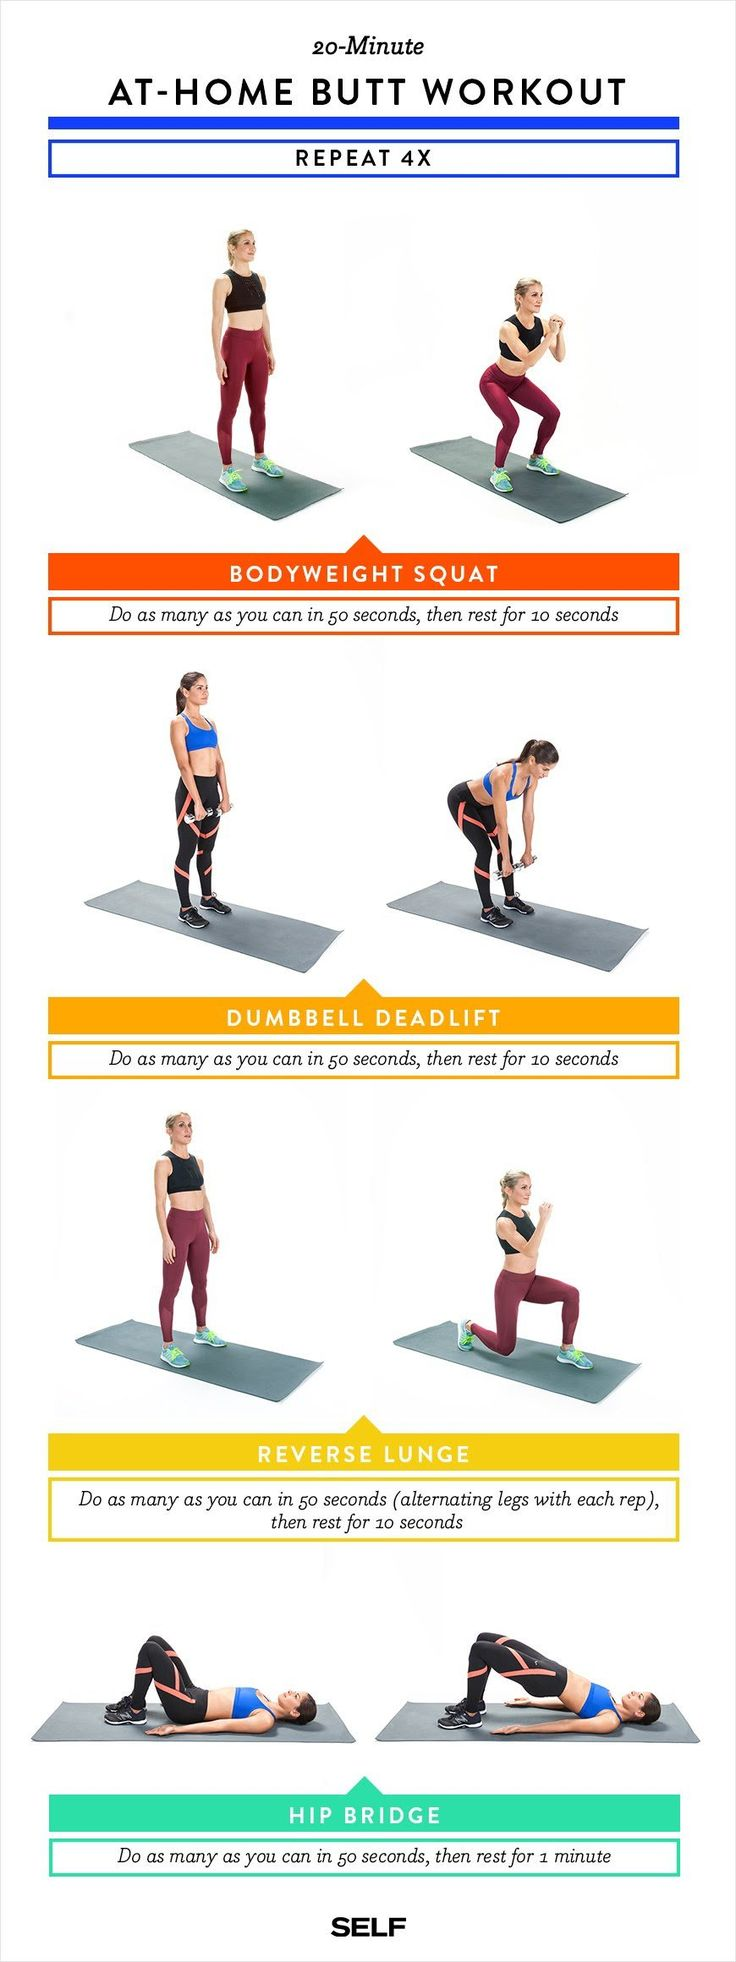 18 Best Emily Skye Workouts Images On Pinterest Workout Videos Exercise Videos And Fitness